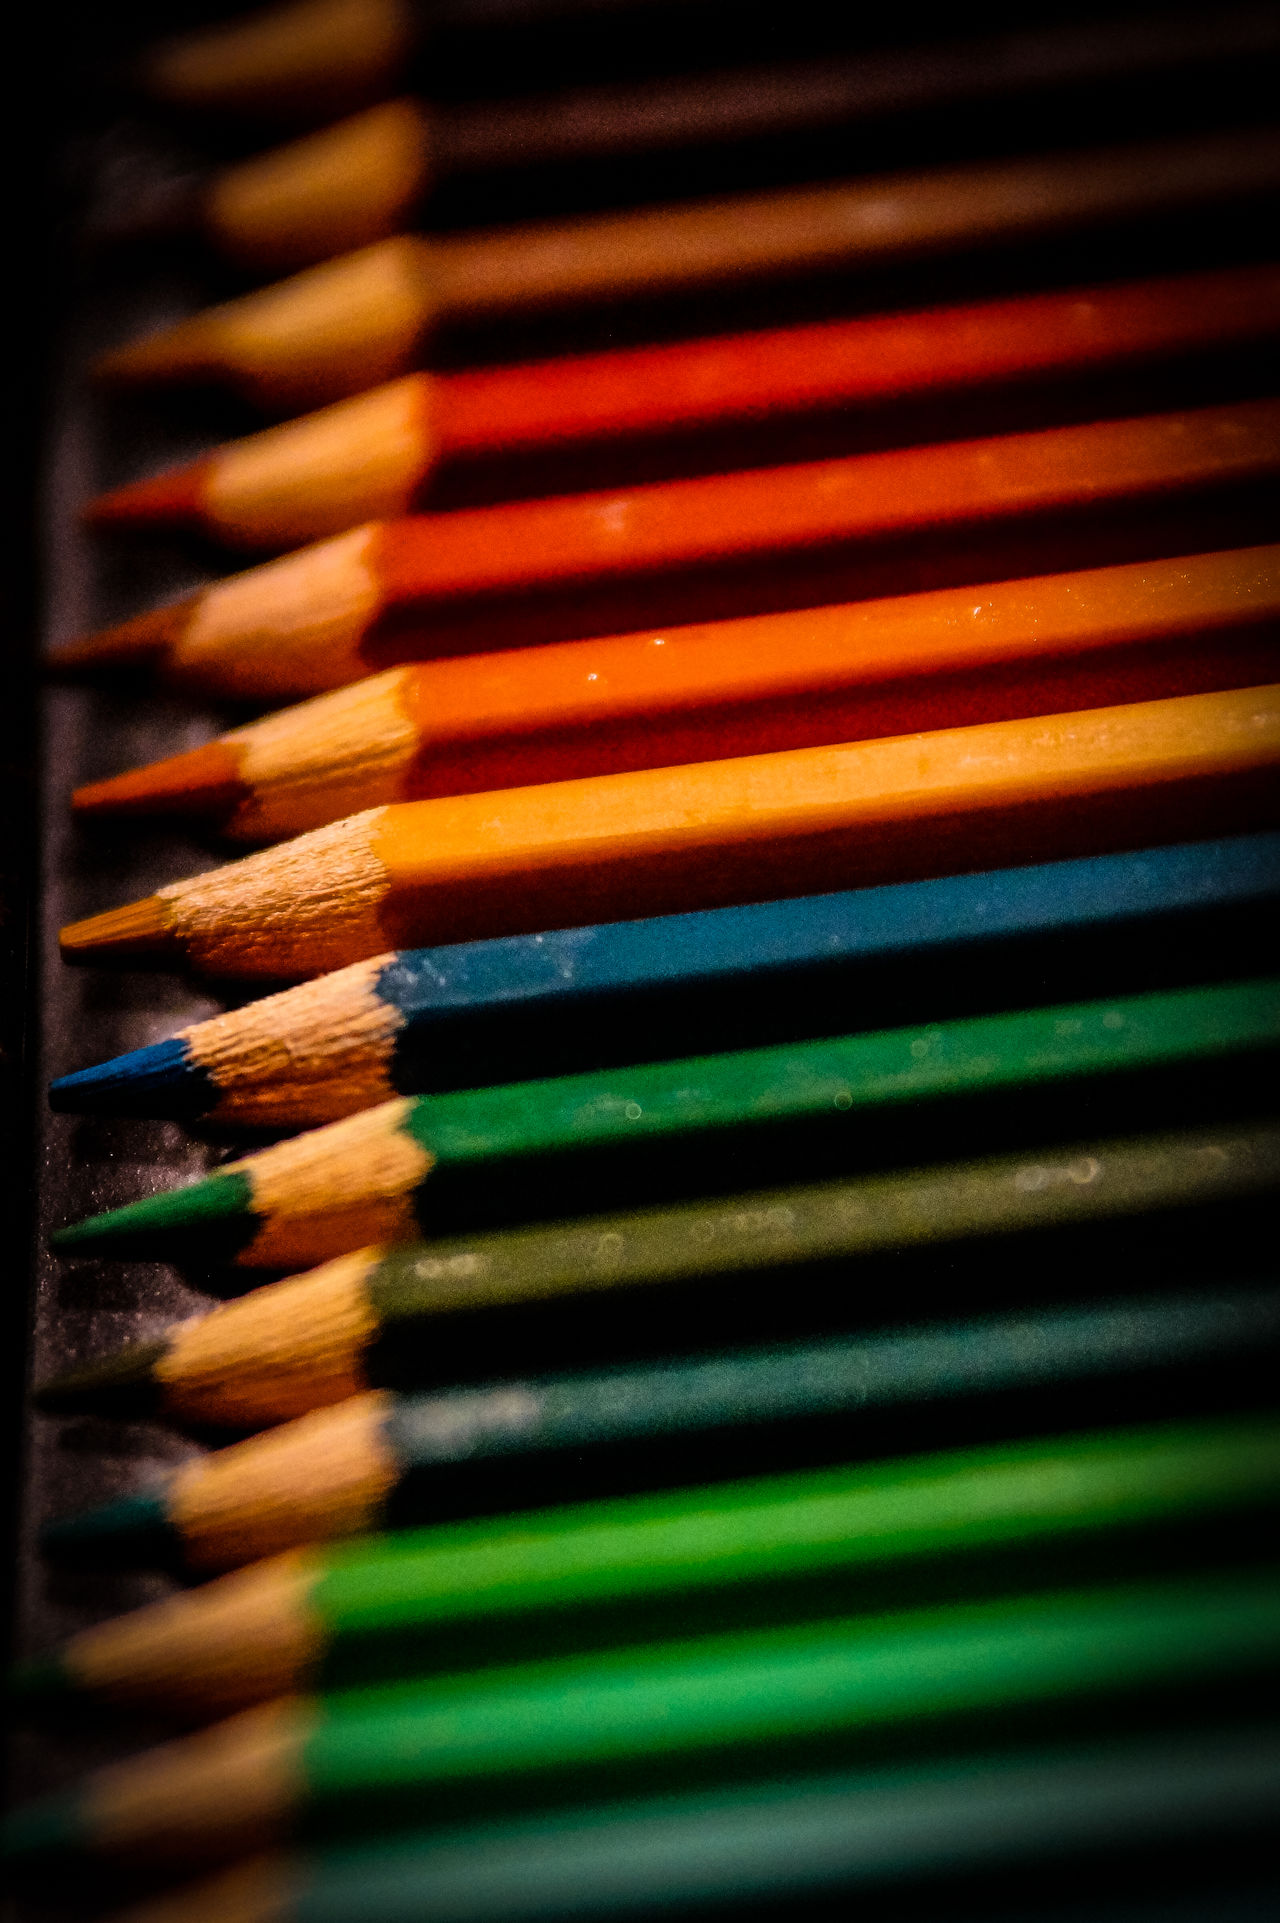 coloring pencils Buntstifte Buntstifte Close-up Colored Pencil Coloring Pencils Day In A Row Indoors  Multi Colored No People Pencils